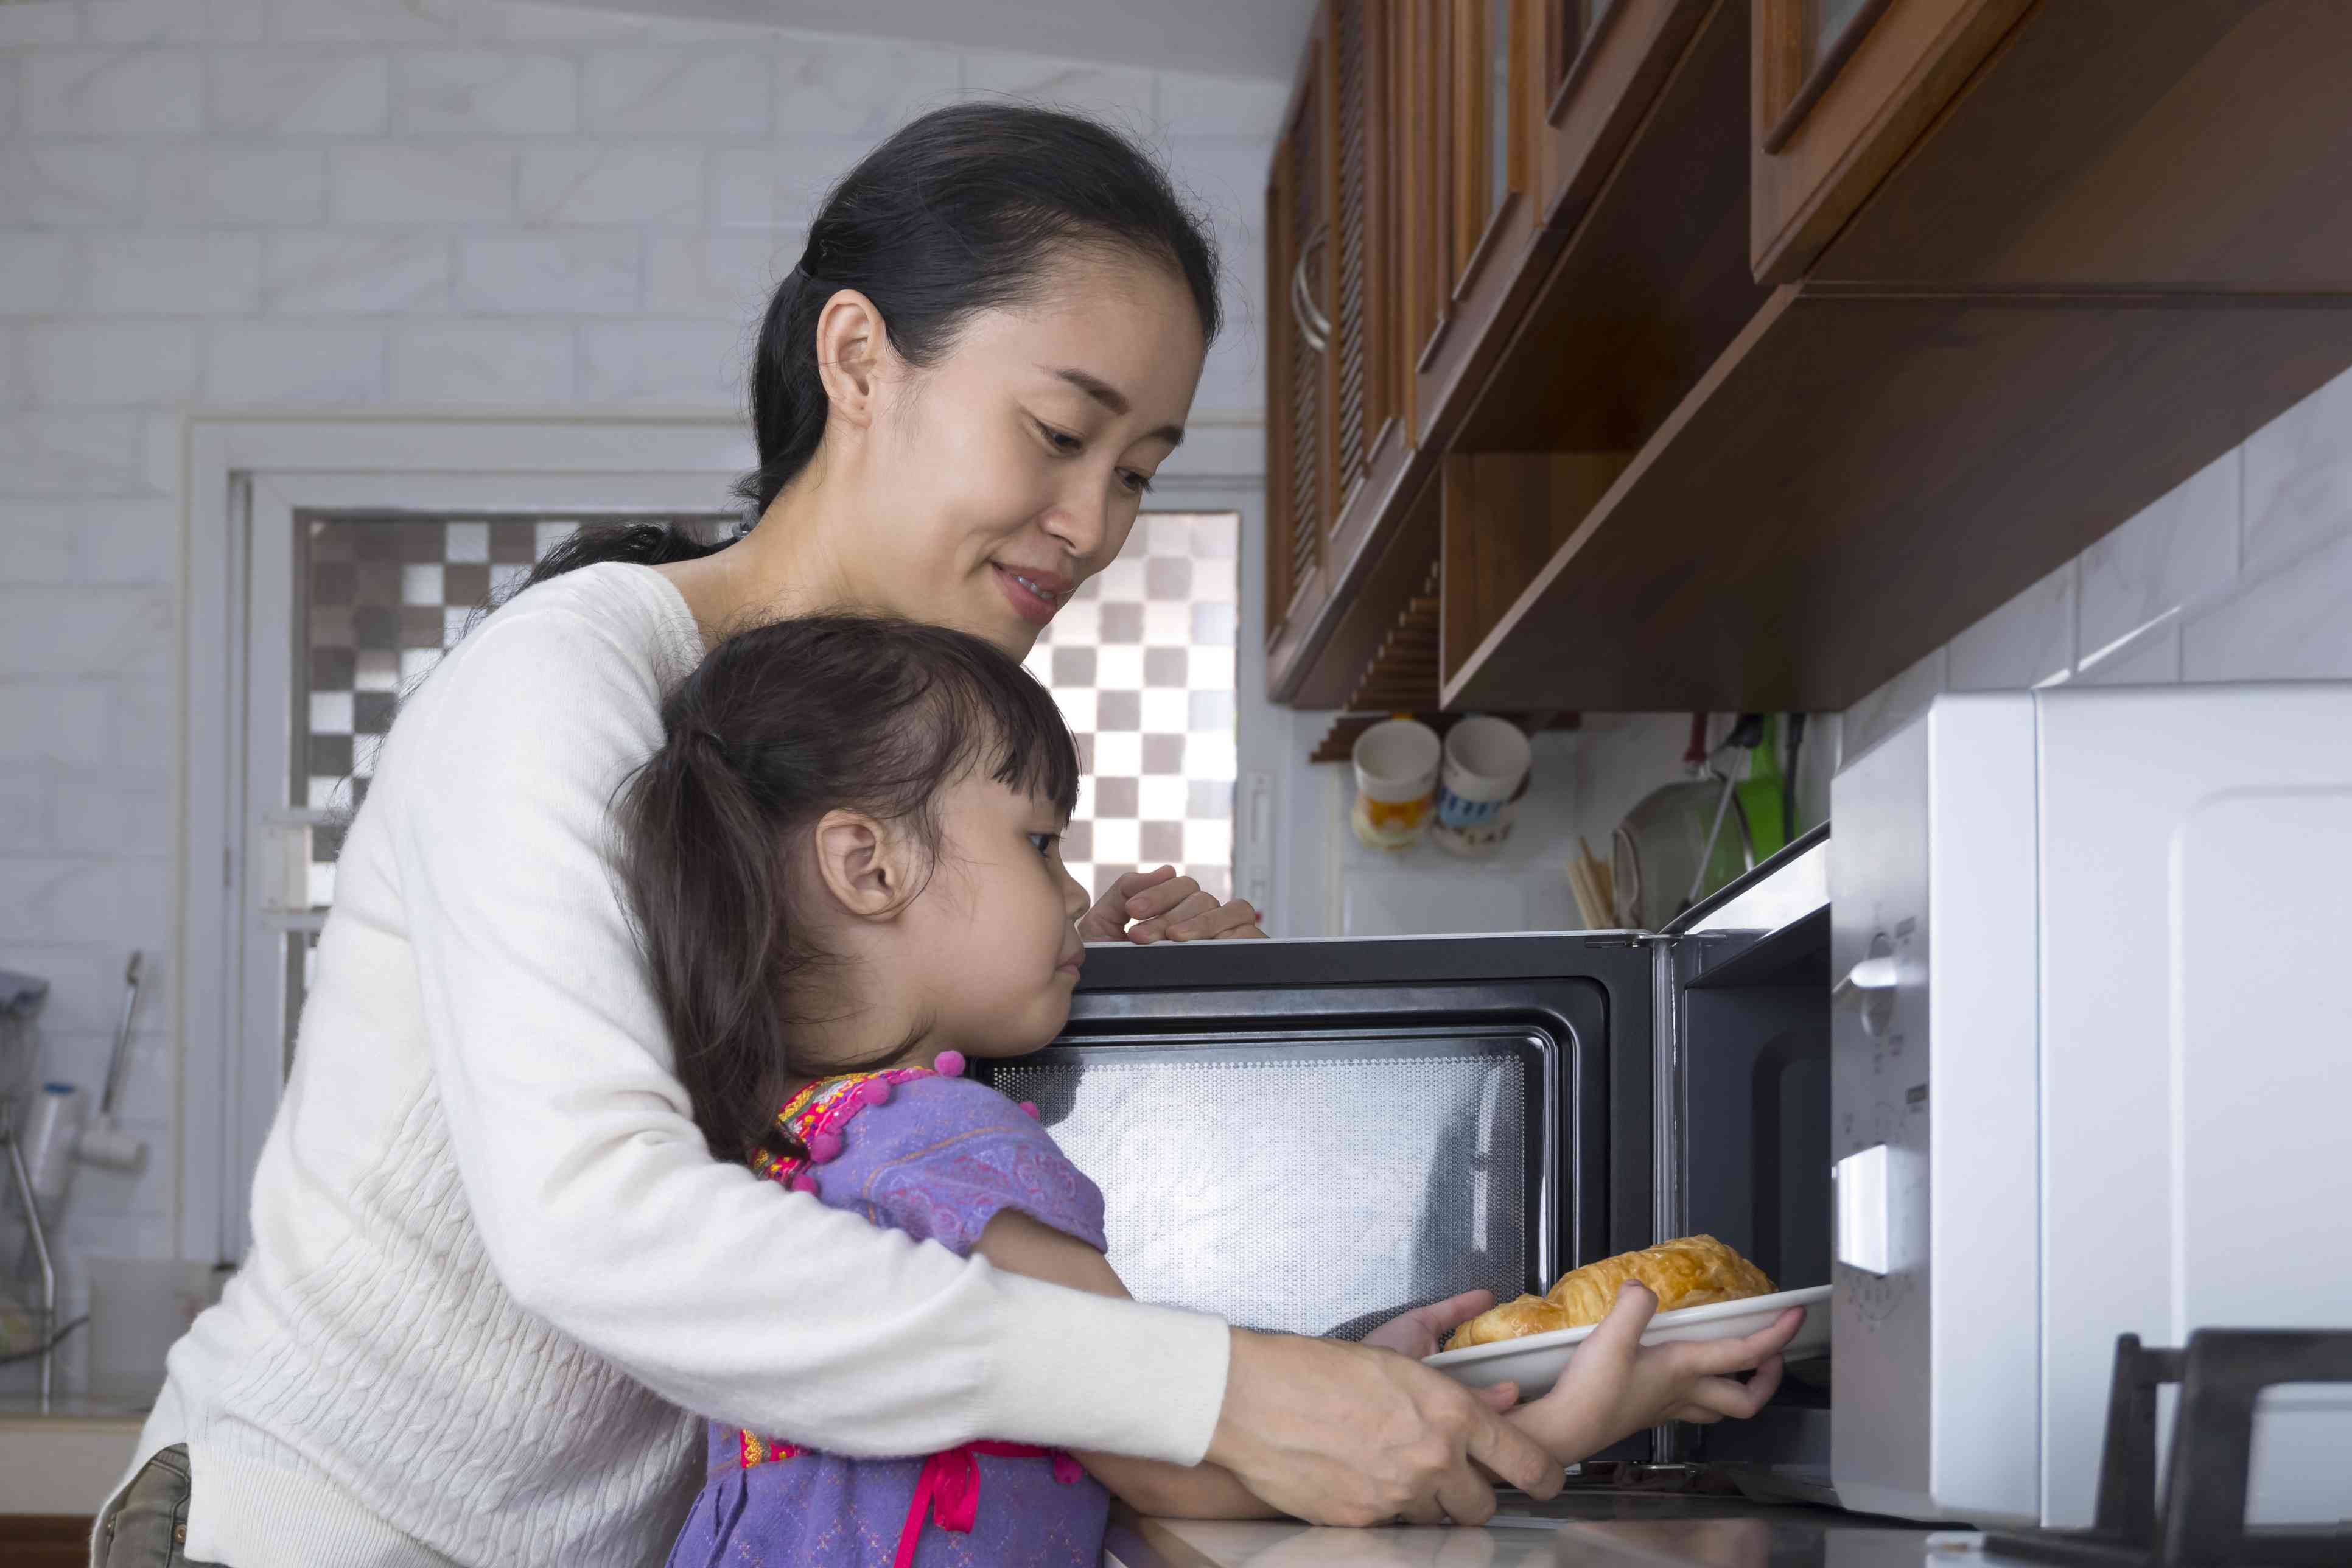 Asian mother and child using a microwave oven